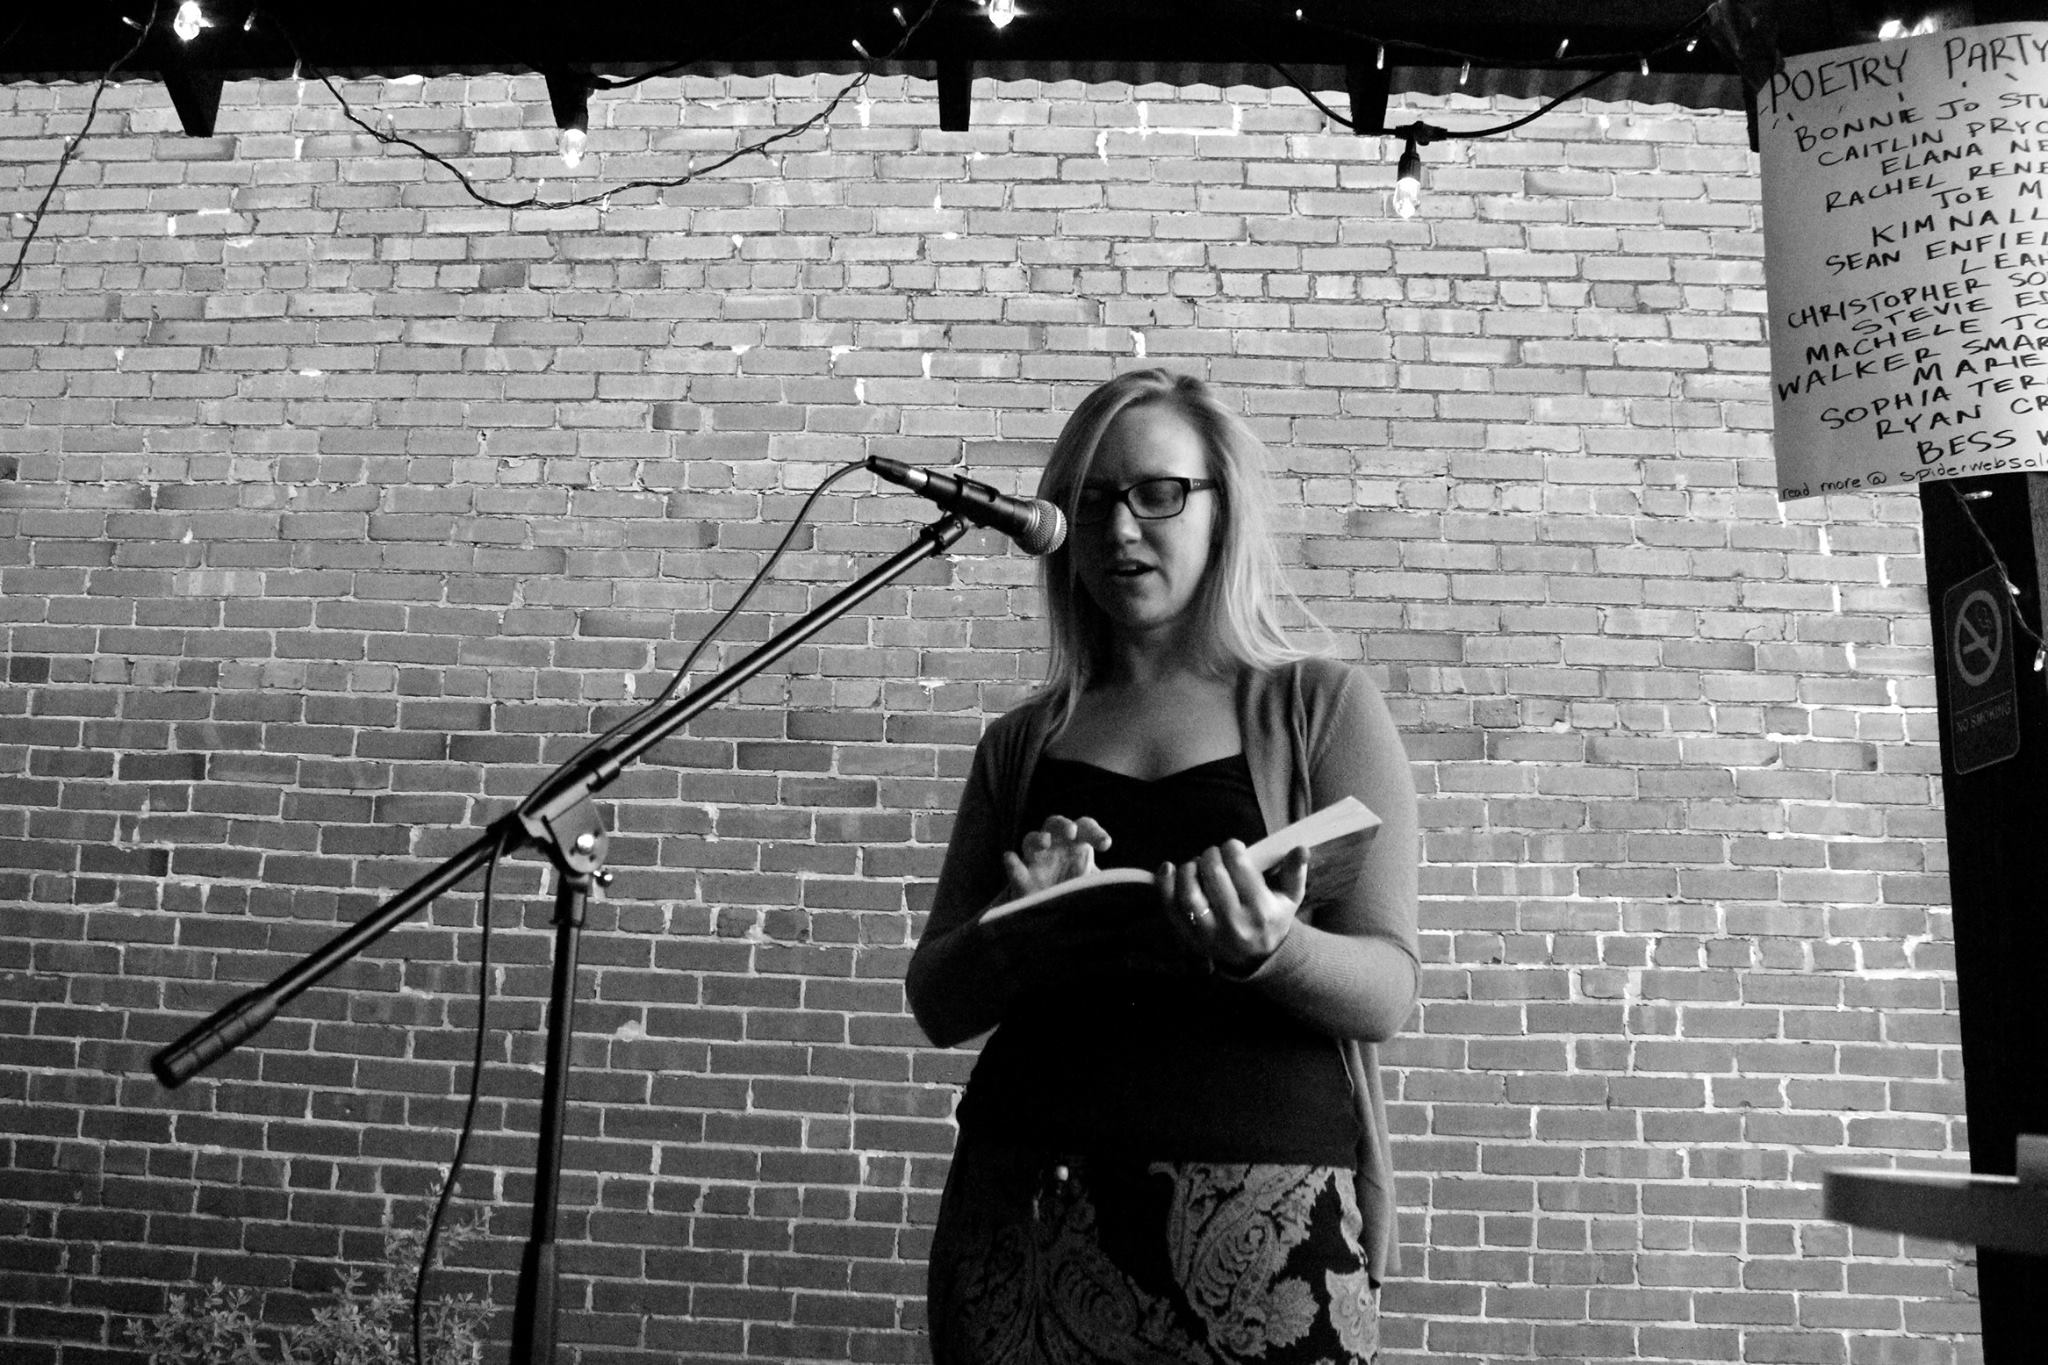 Bonnie Jo Stufflebeam at Spiderweb Salon's Poetry Party | photo by courtney marie